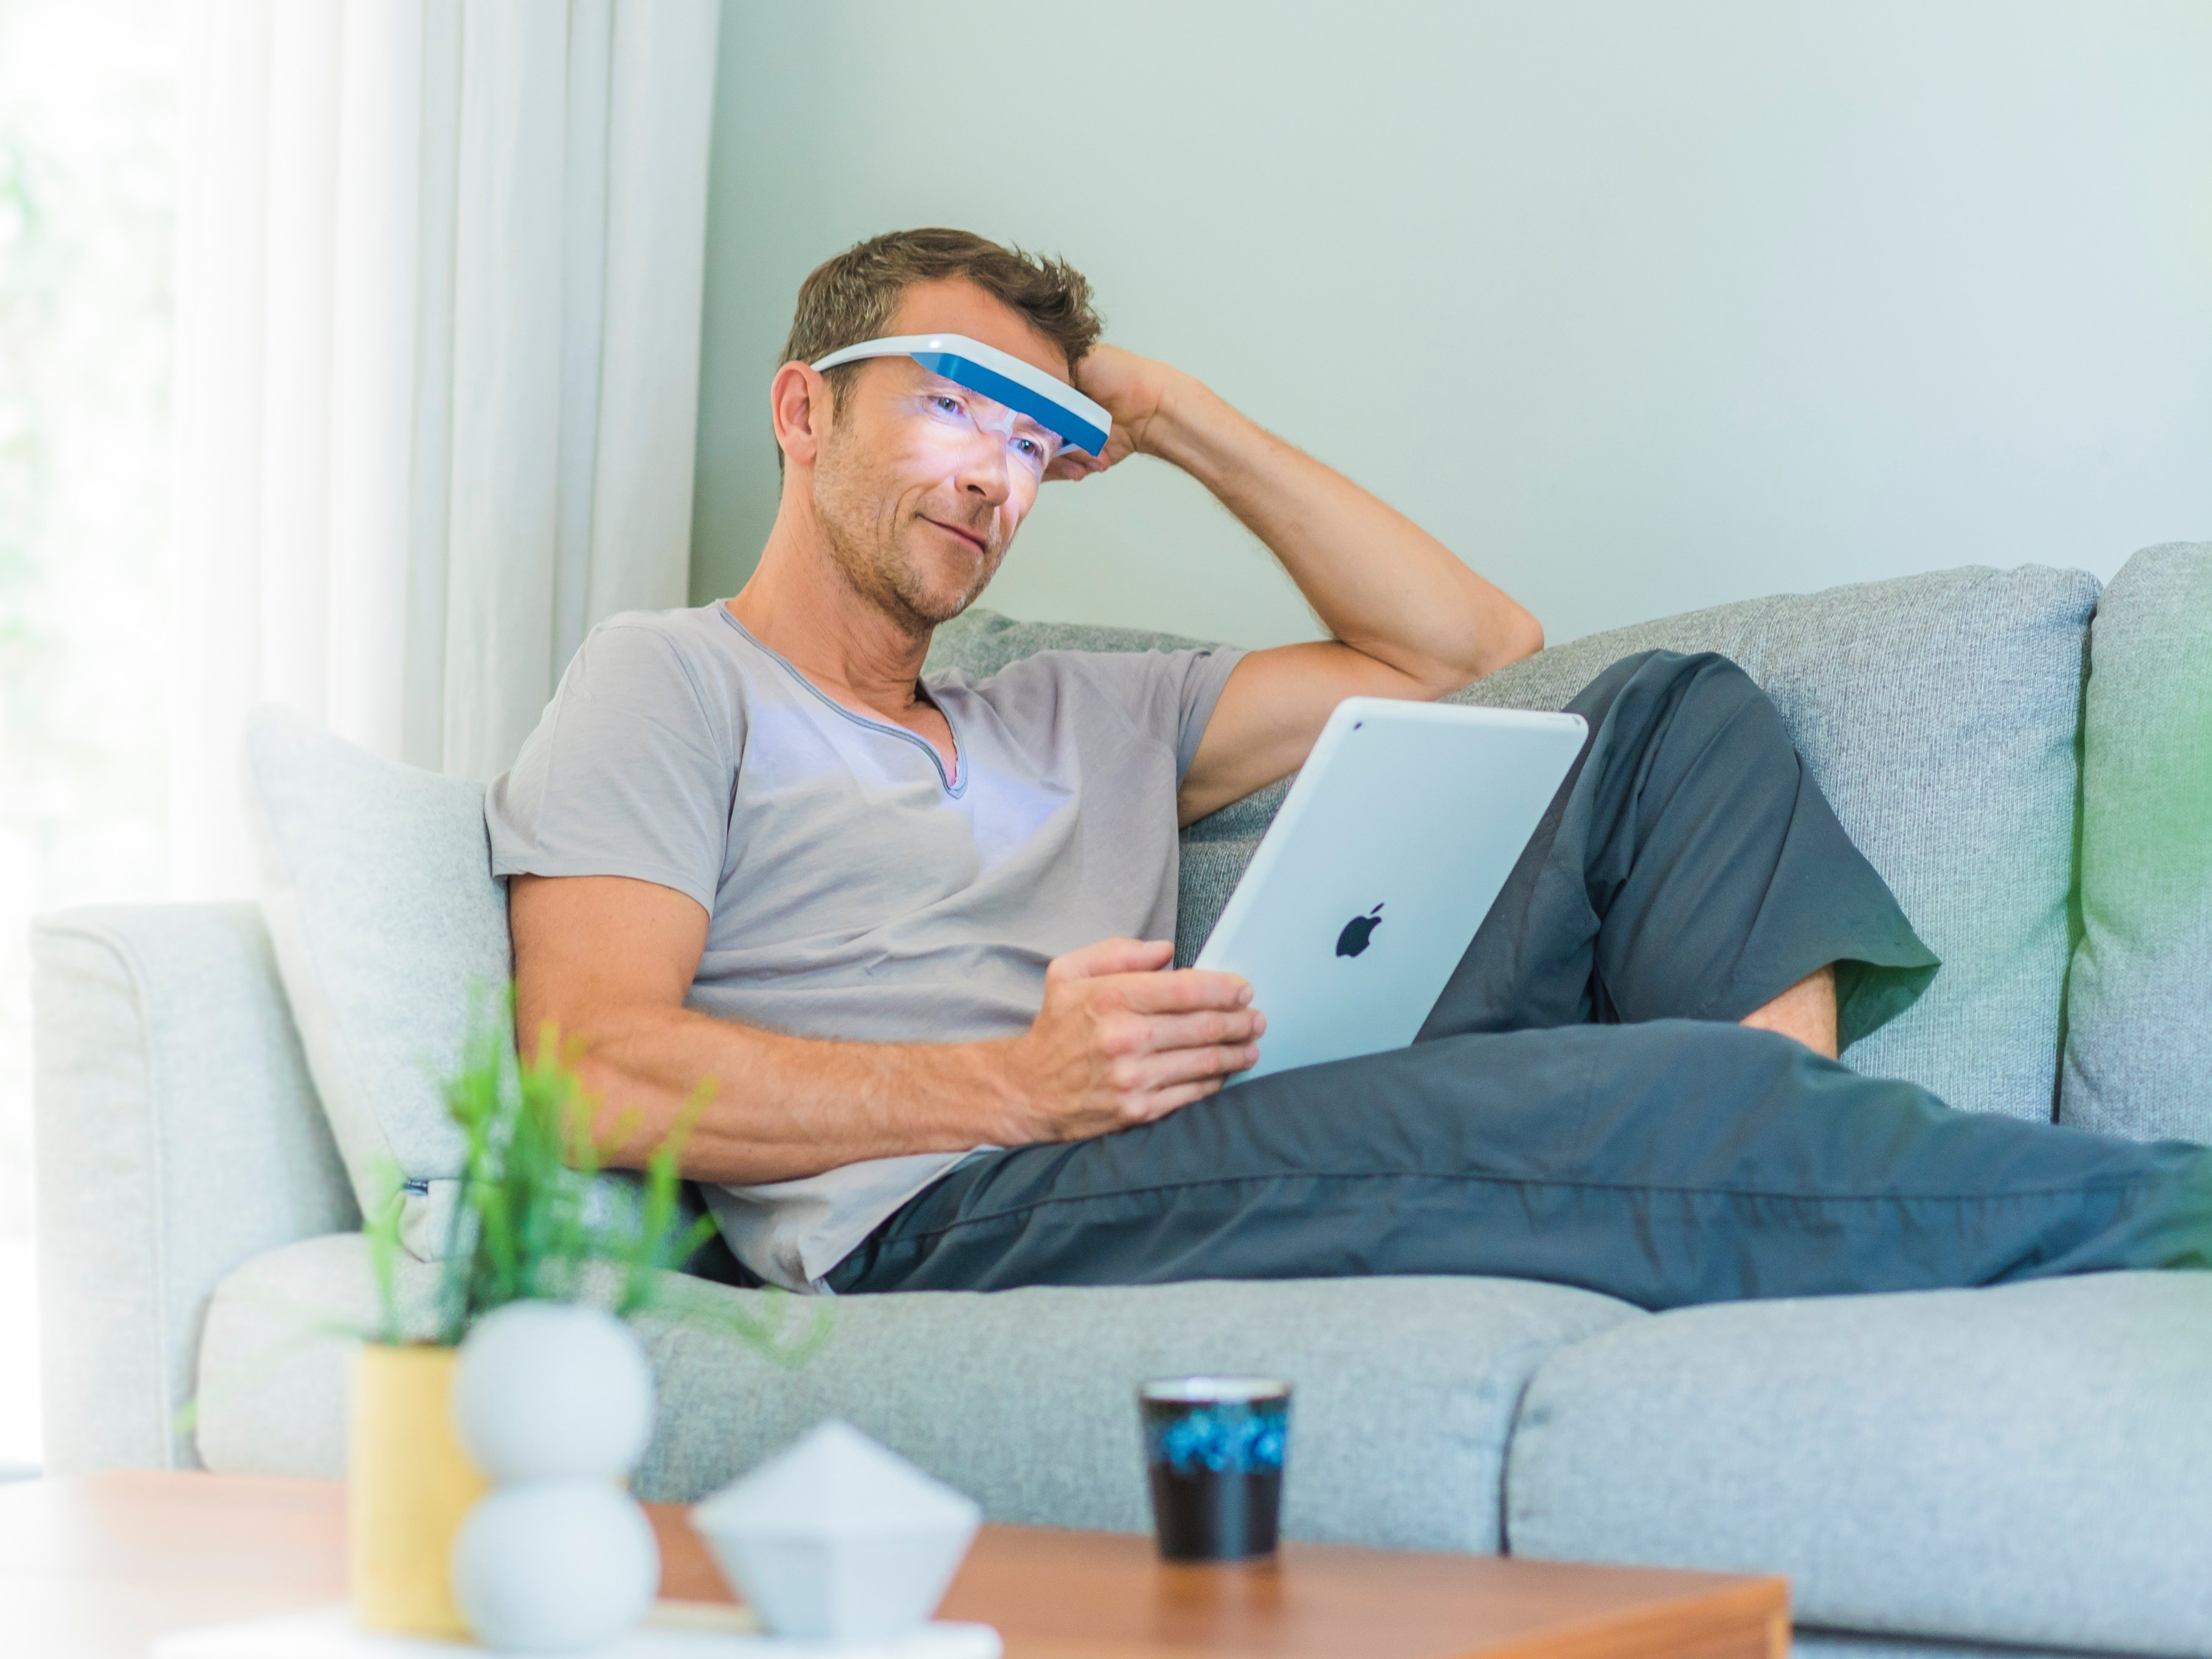 Blue-Enriched White Light Therapy Glasses